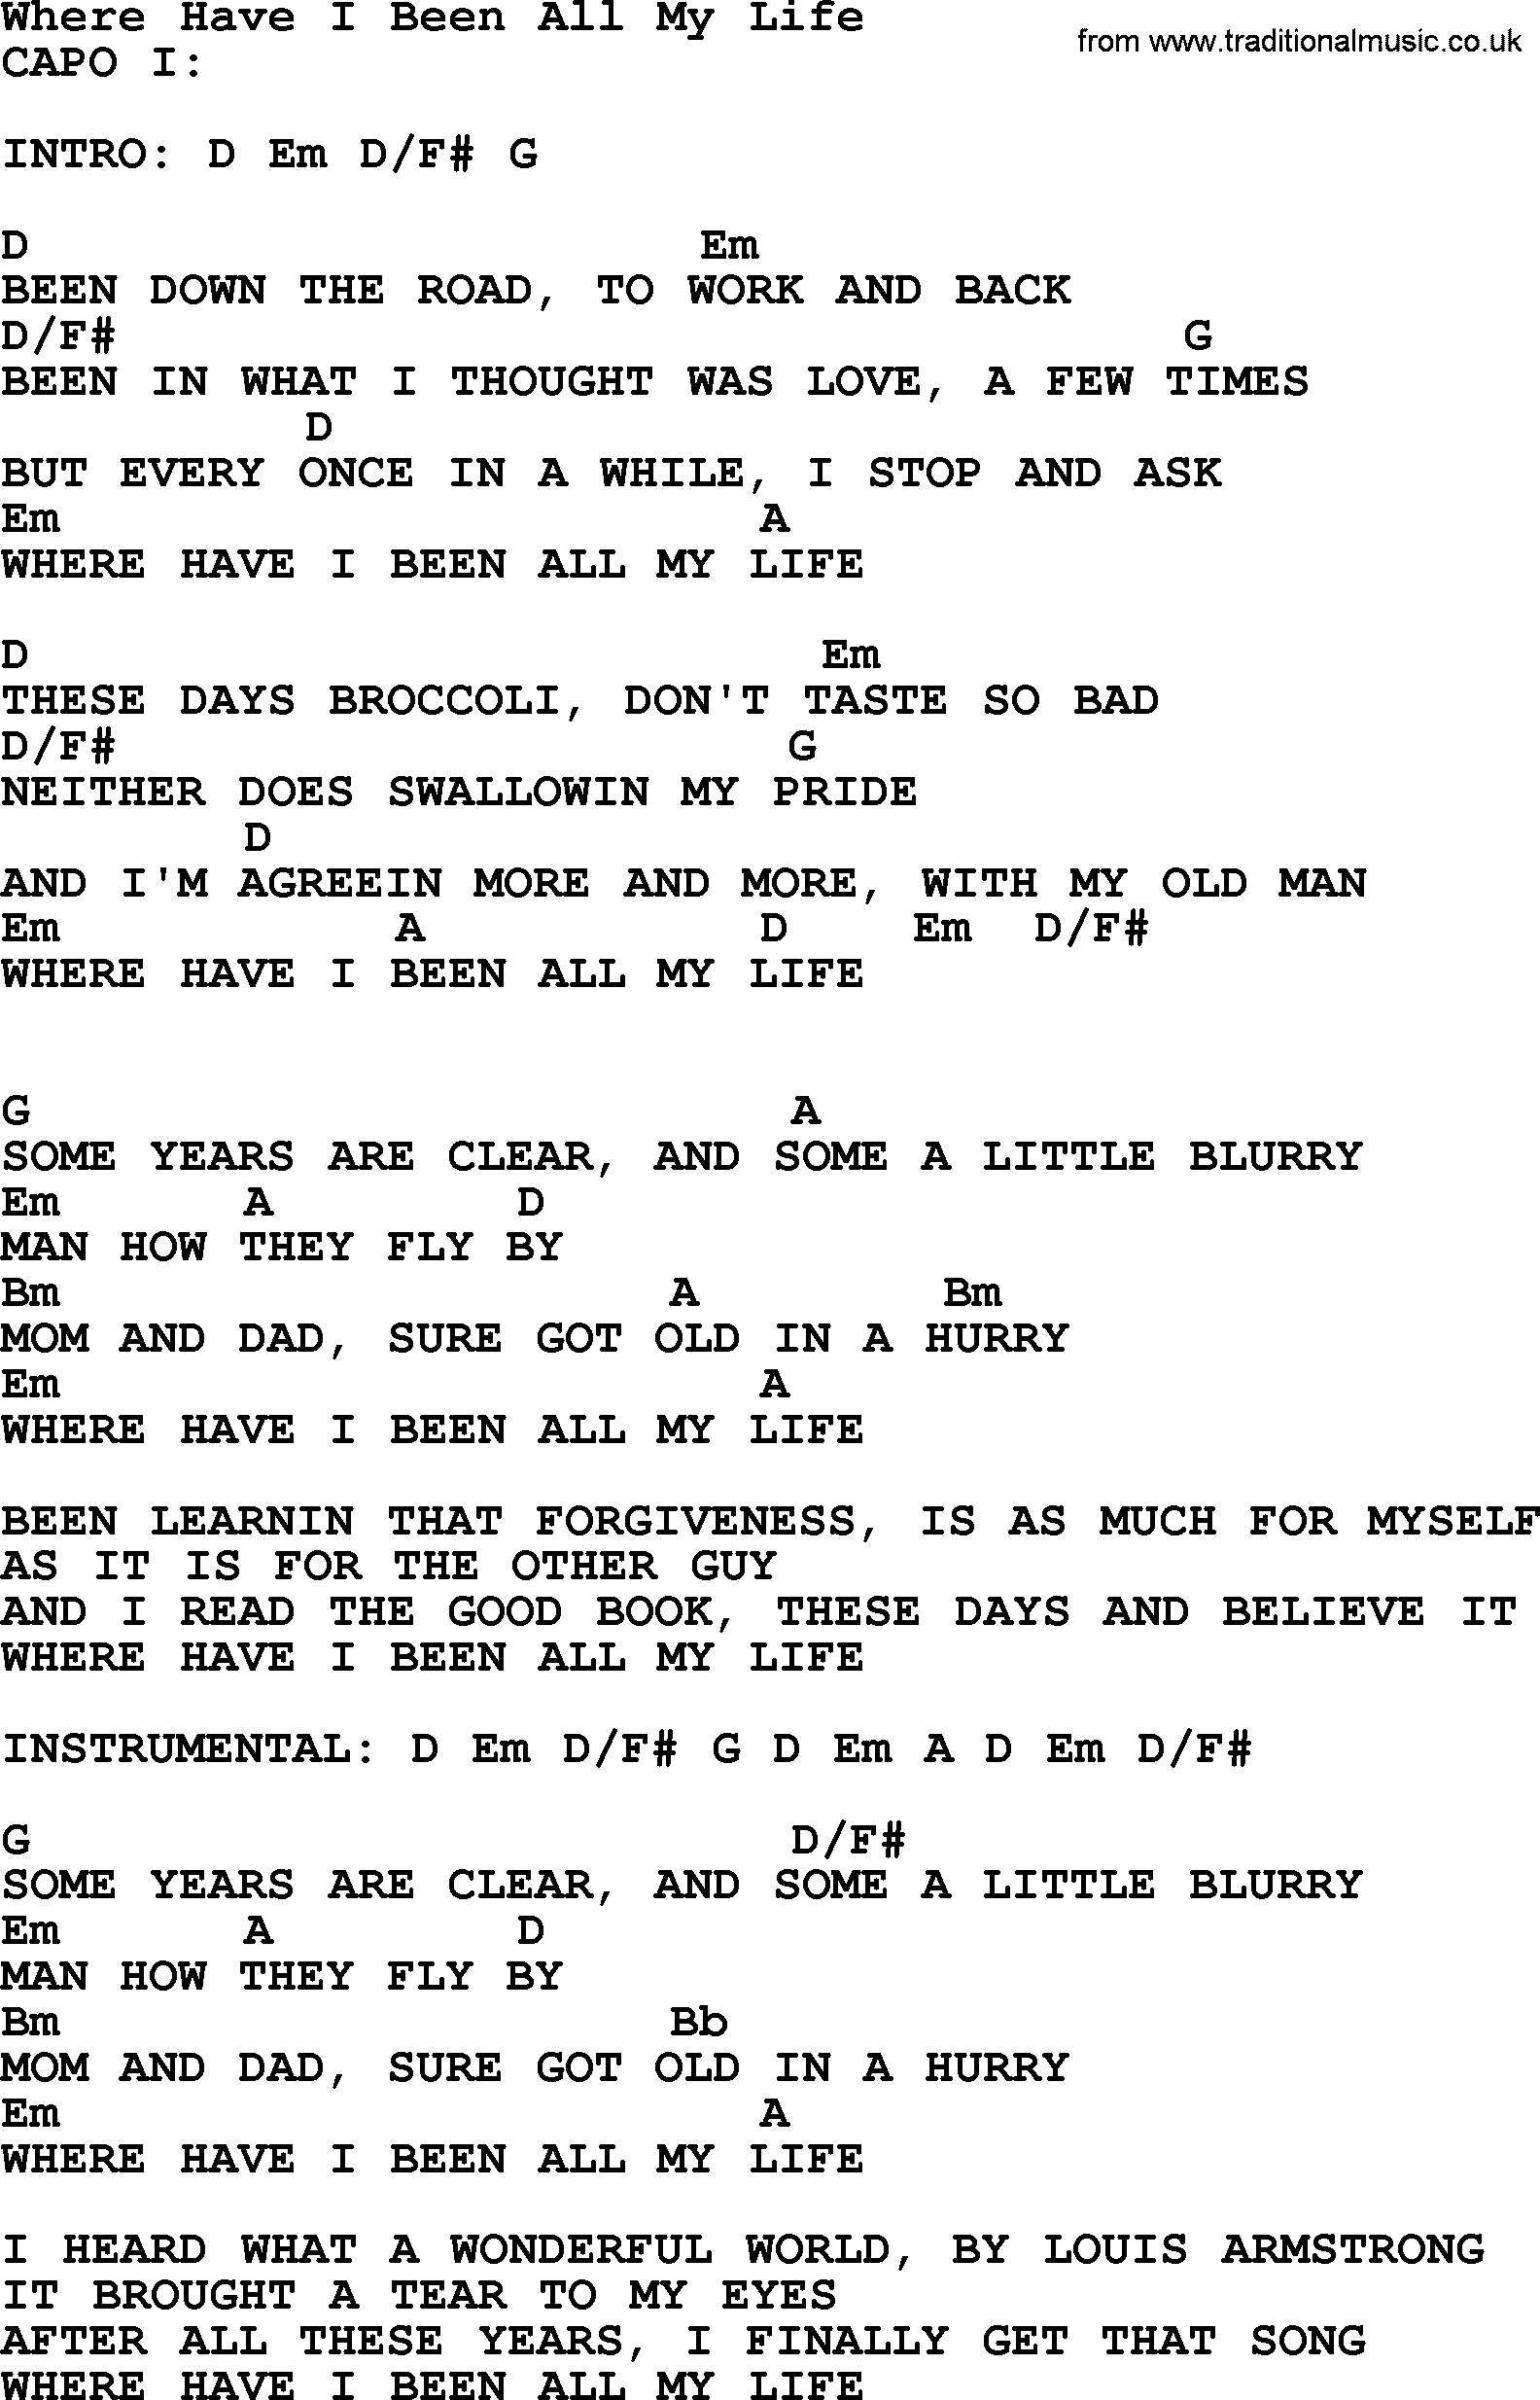 Where Have I Been All My Life By George Strait Lyrics And Chords